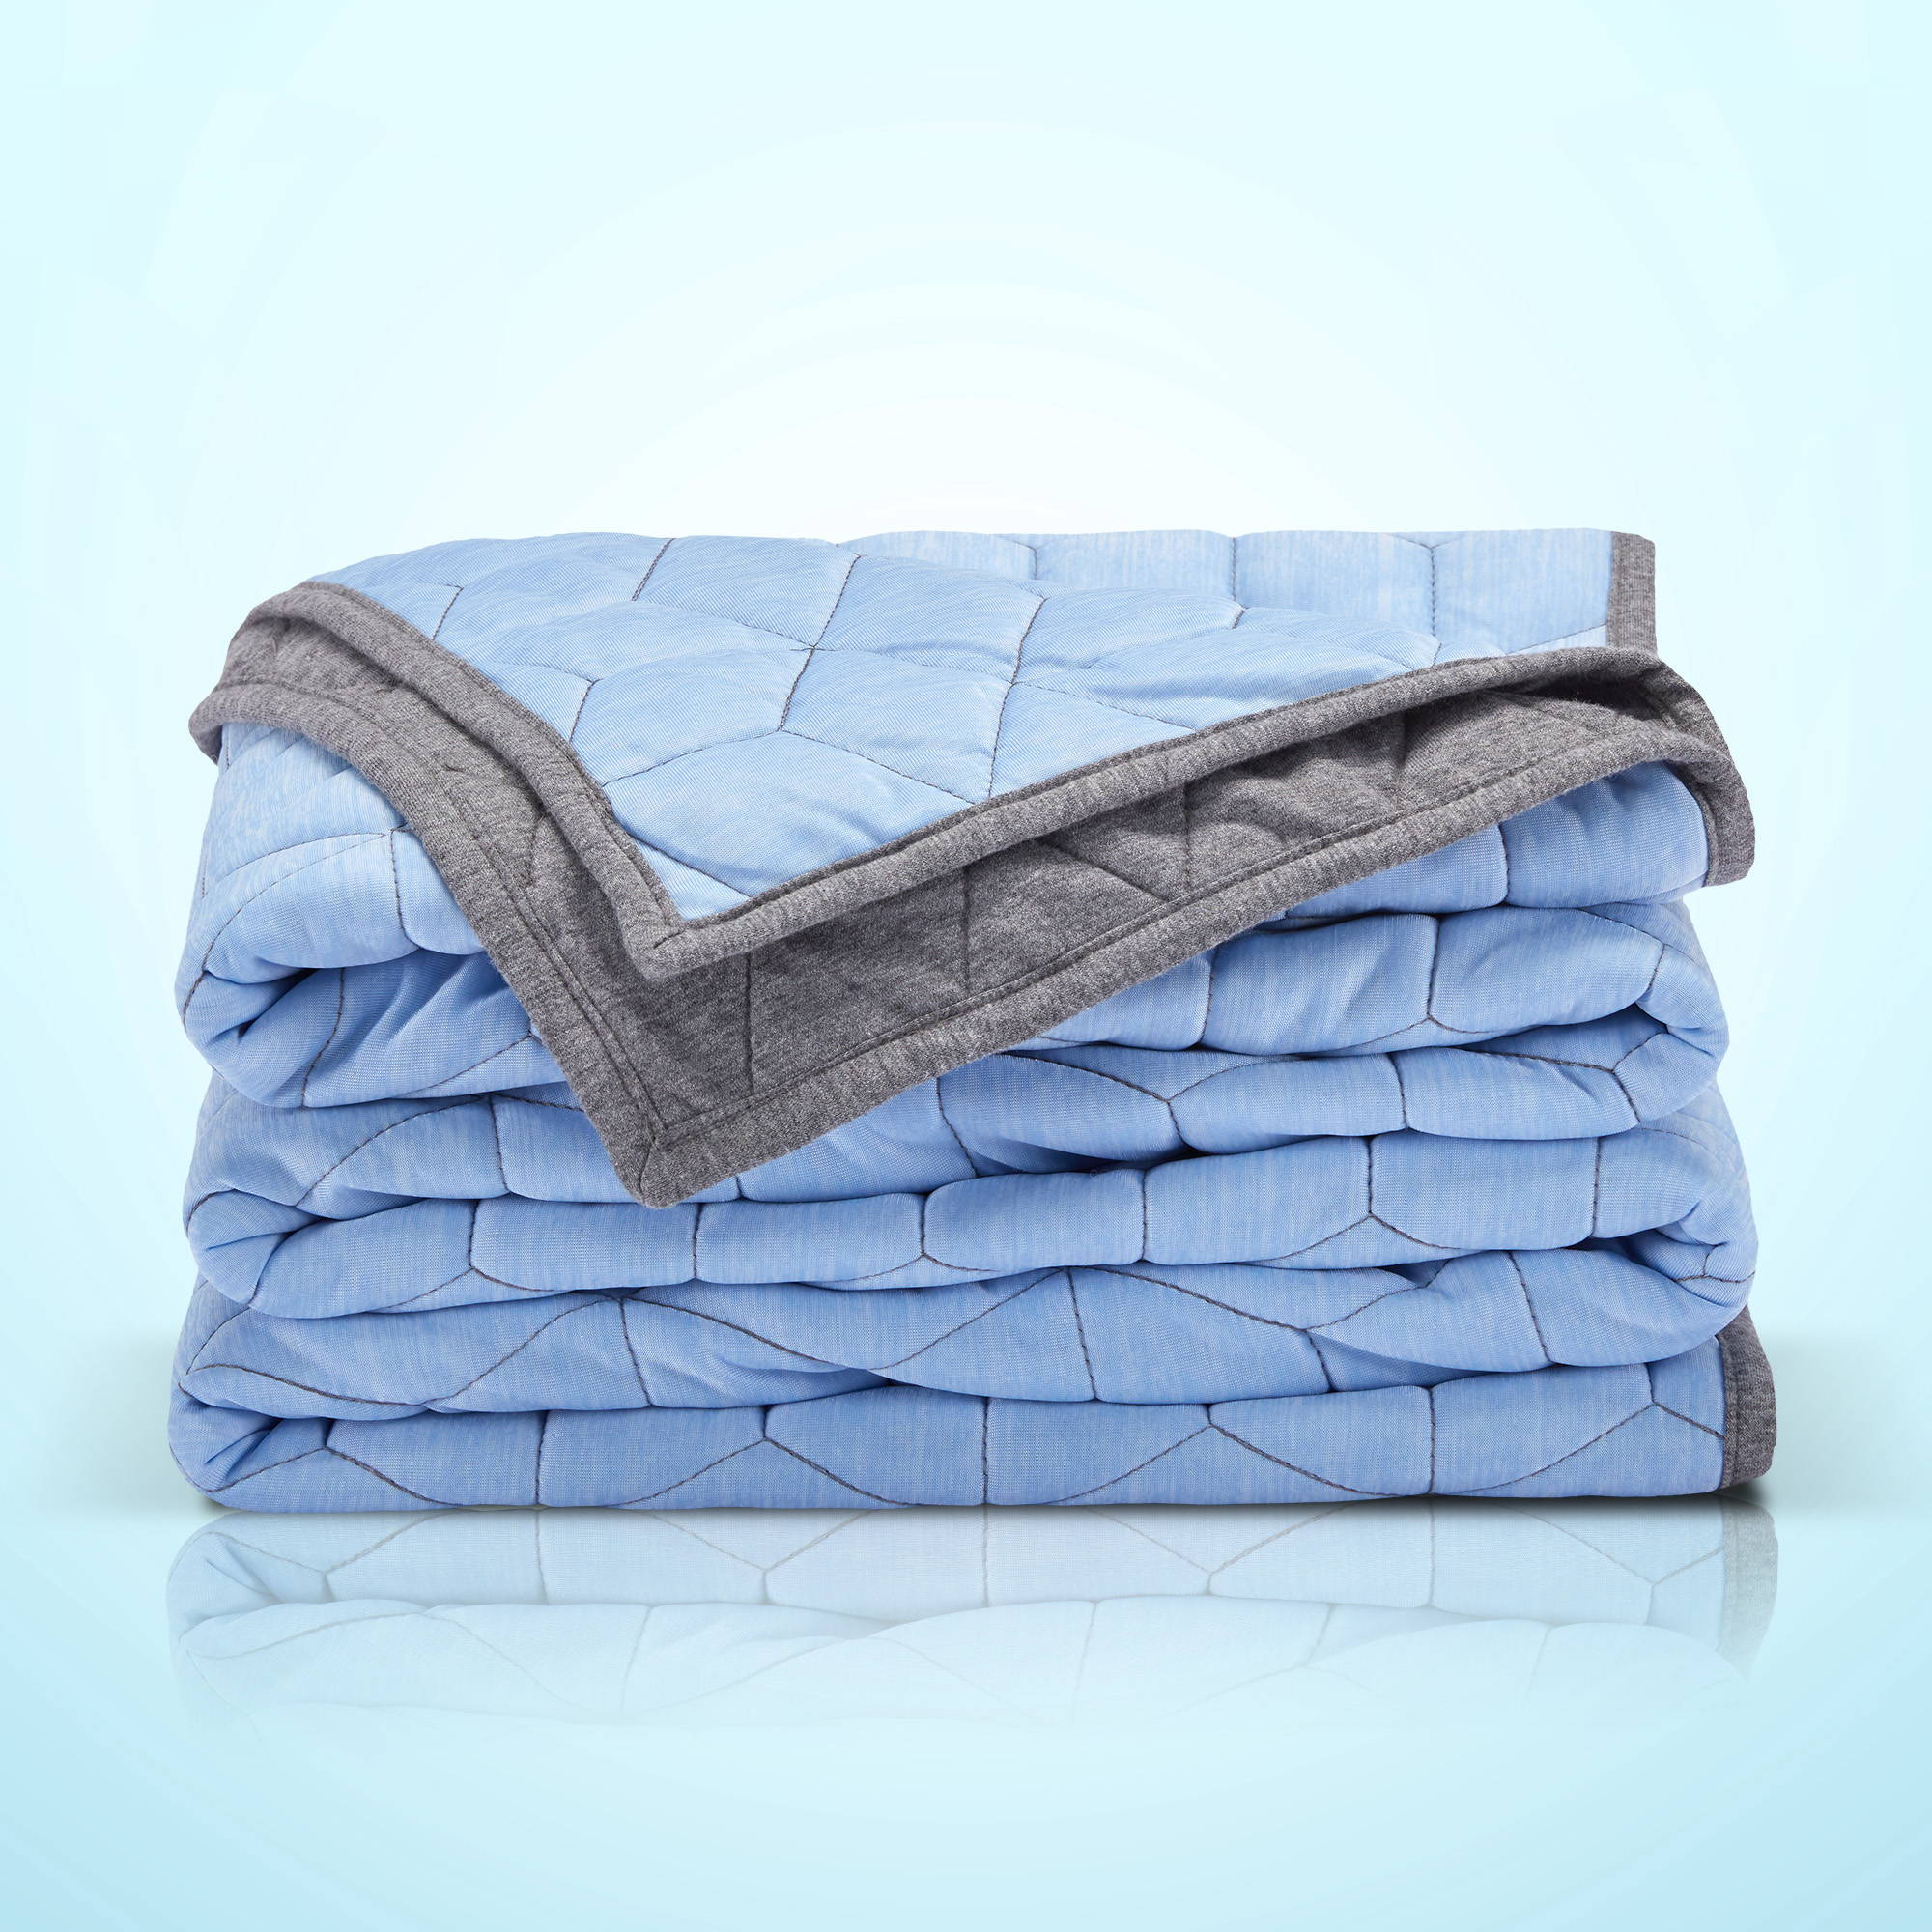 sleep zone bedding website store products collections cooling duvet cover blue bedroom